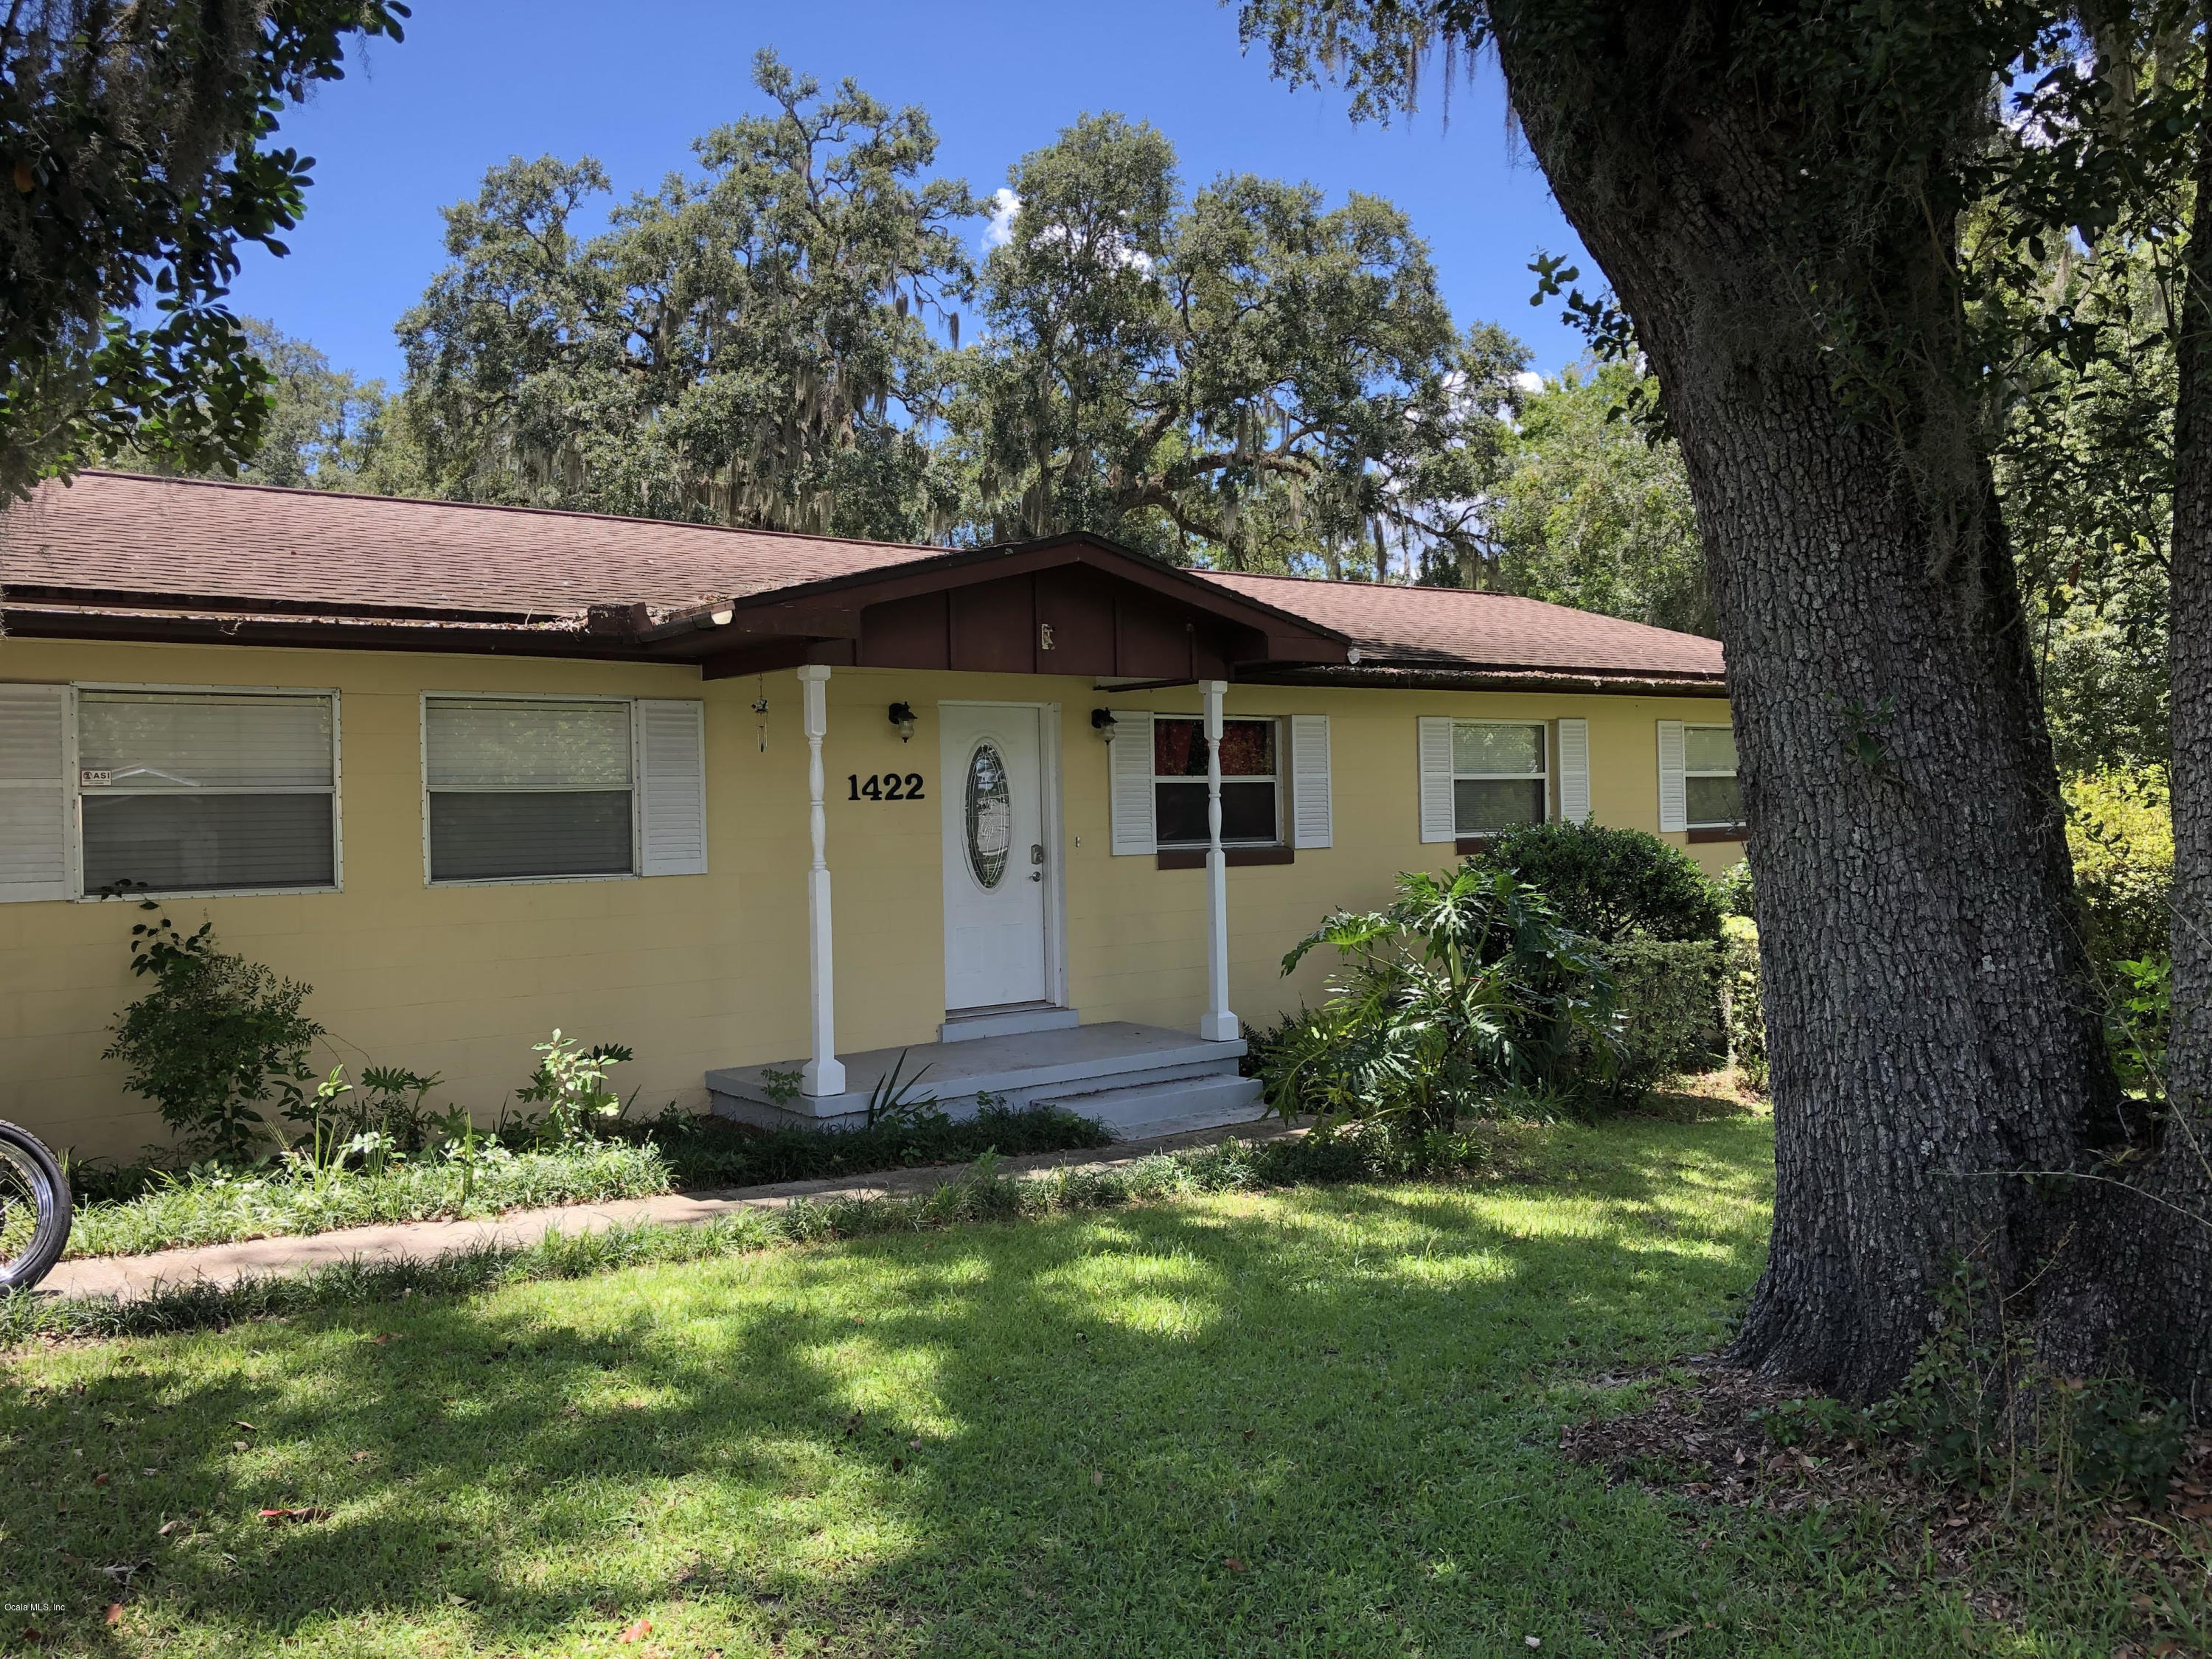 1422 NE 15TH PLACE, OCALA, FL 34470